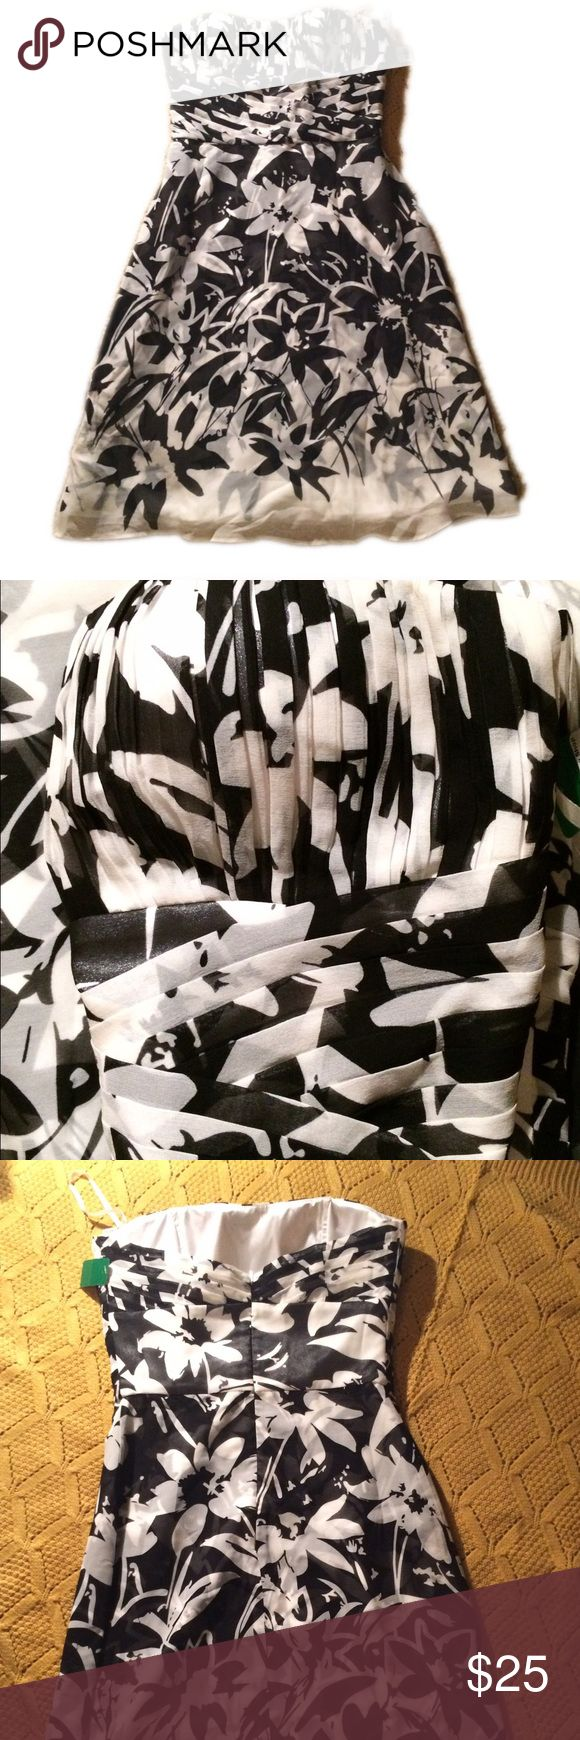 Dress Beautiful strapless black and white dress with pleated bodice details. Can be worn alone or with a shawl on cool evening. Excellent for a special occasion, a date night or just because. White House Black Market Dresses Strapless